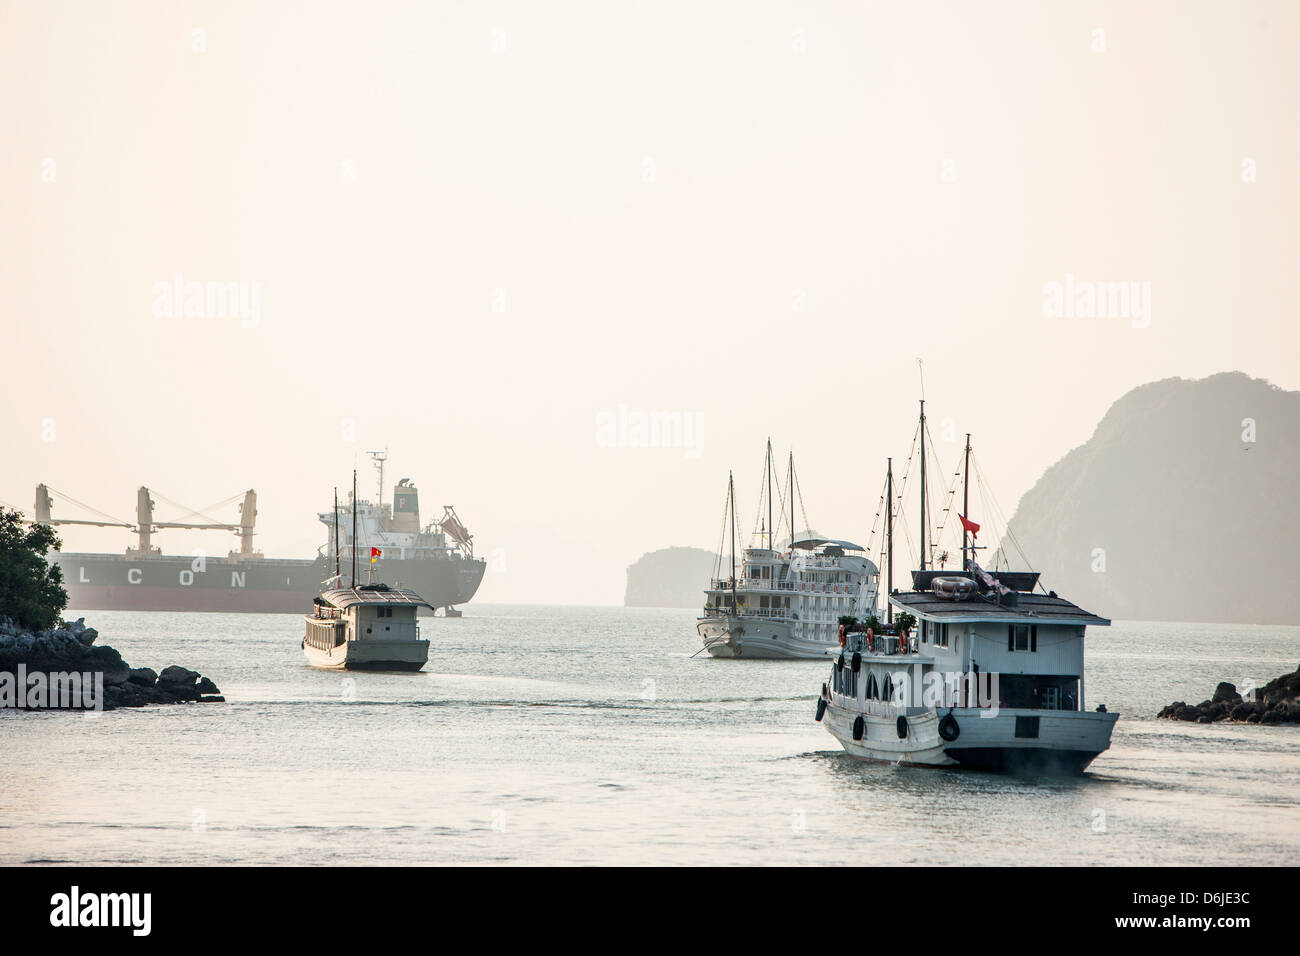 Shipping in Halong Bay, UNESCO World Heritage Site, Vietnam, Indochina, Southeast Asia, Asia - Stock Image